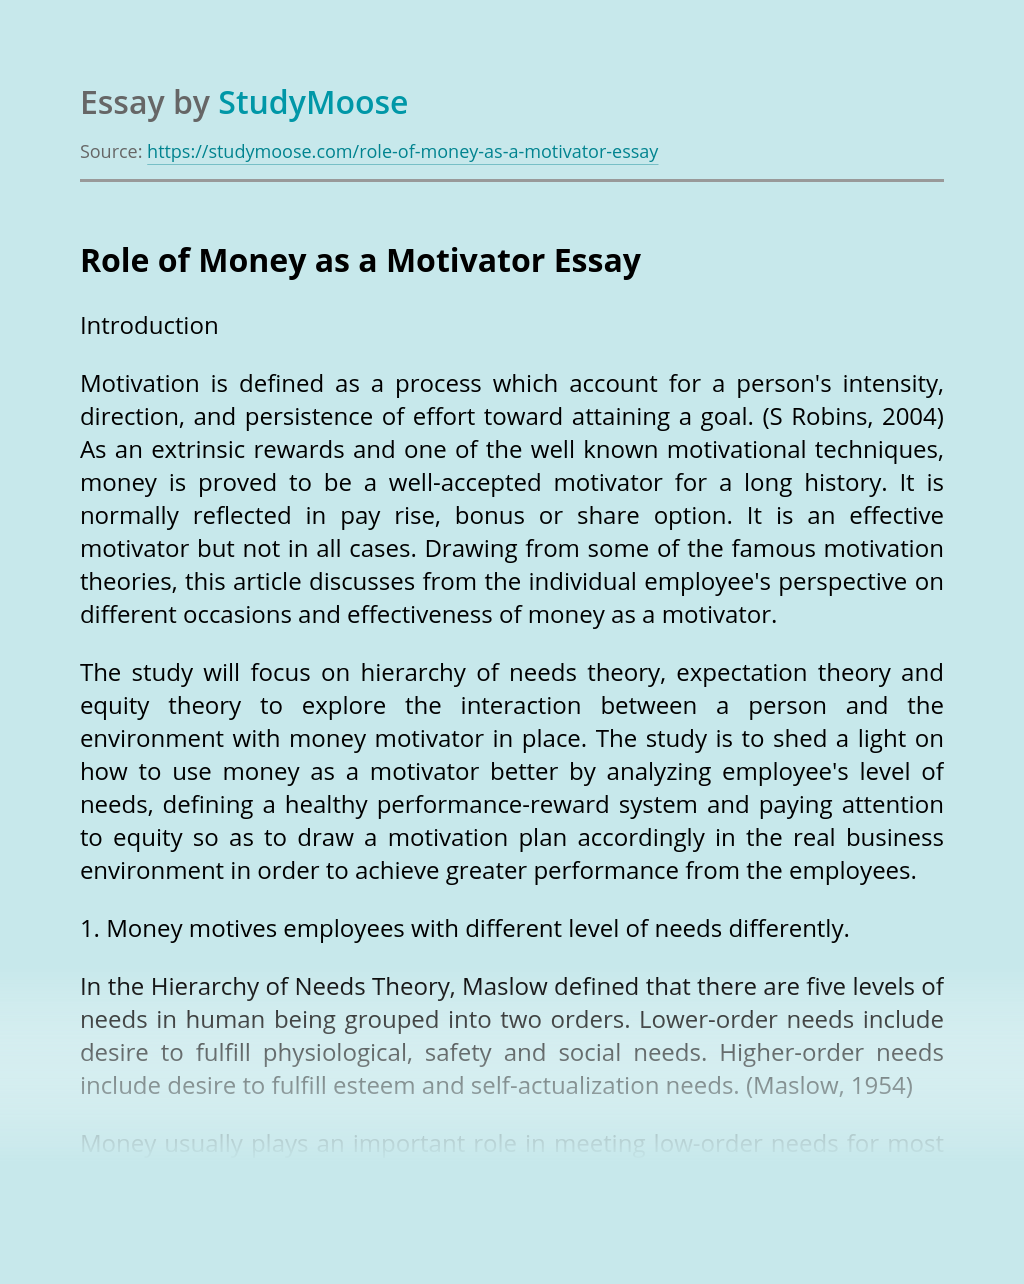 Role of Money as a Motivator